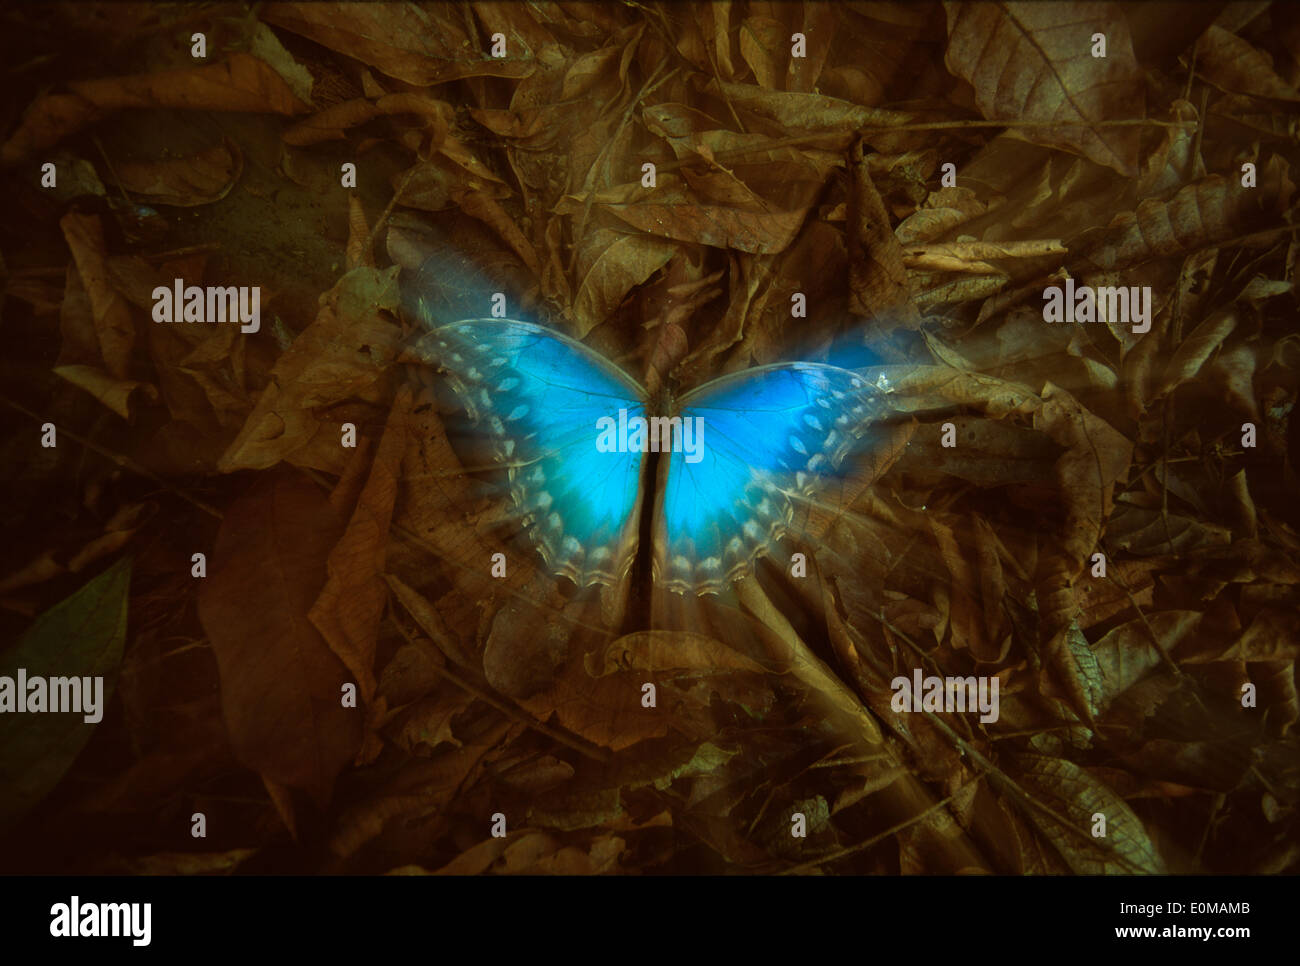 A dead Blue Morpho butterfly lies amonst the brown leaves on forest floor, Corcovado National Park, Costa Rica (Morpho - Stock Image